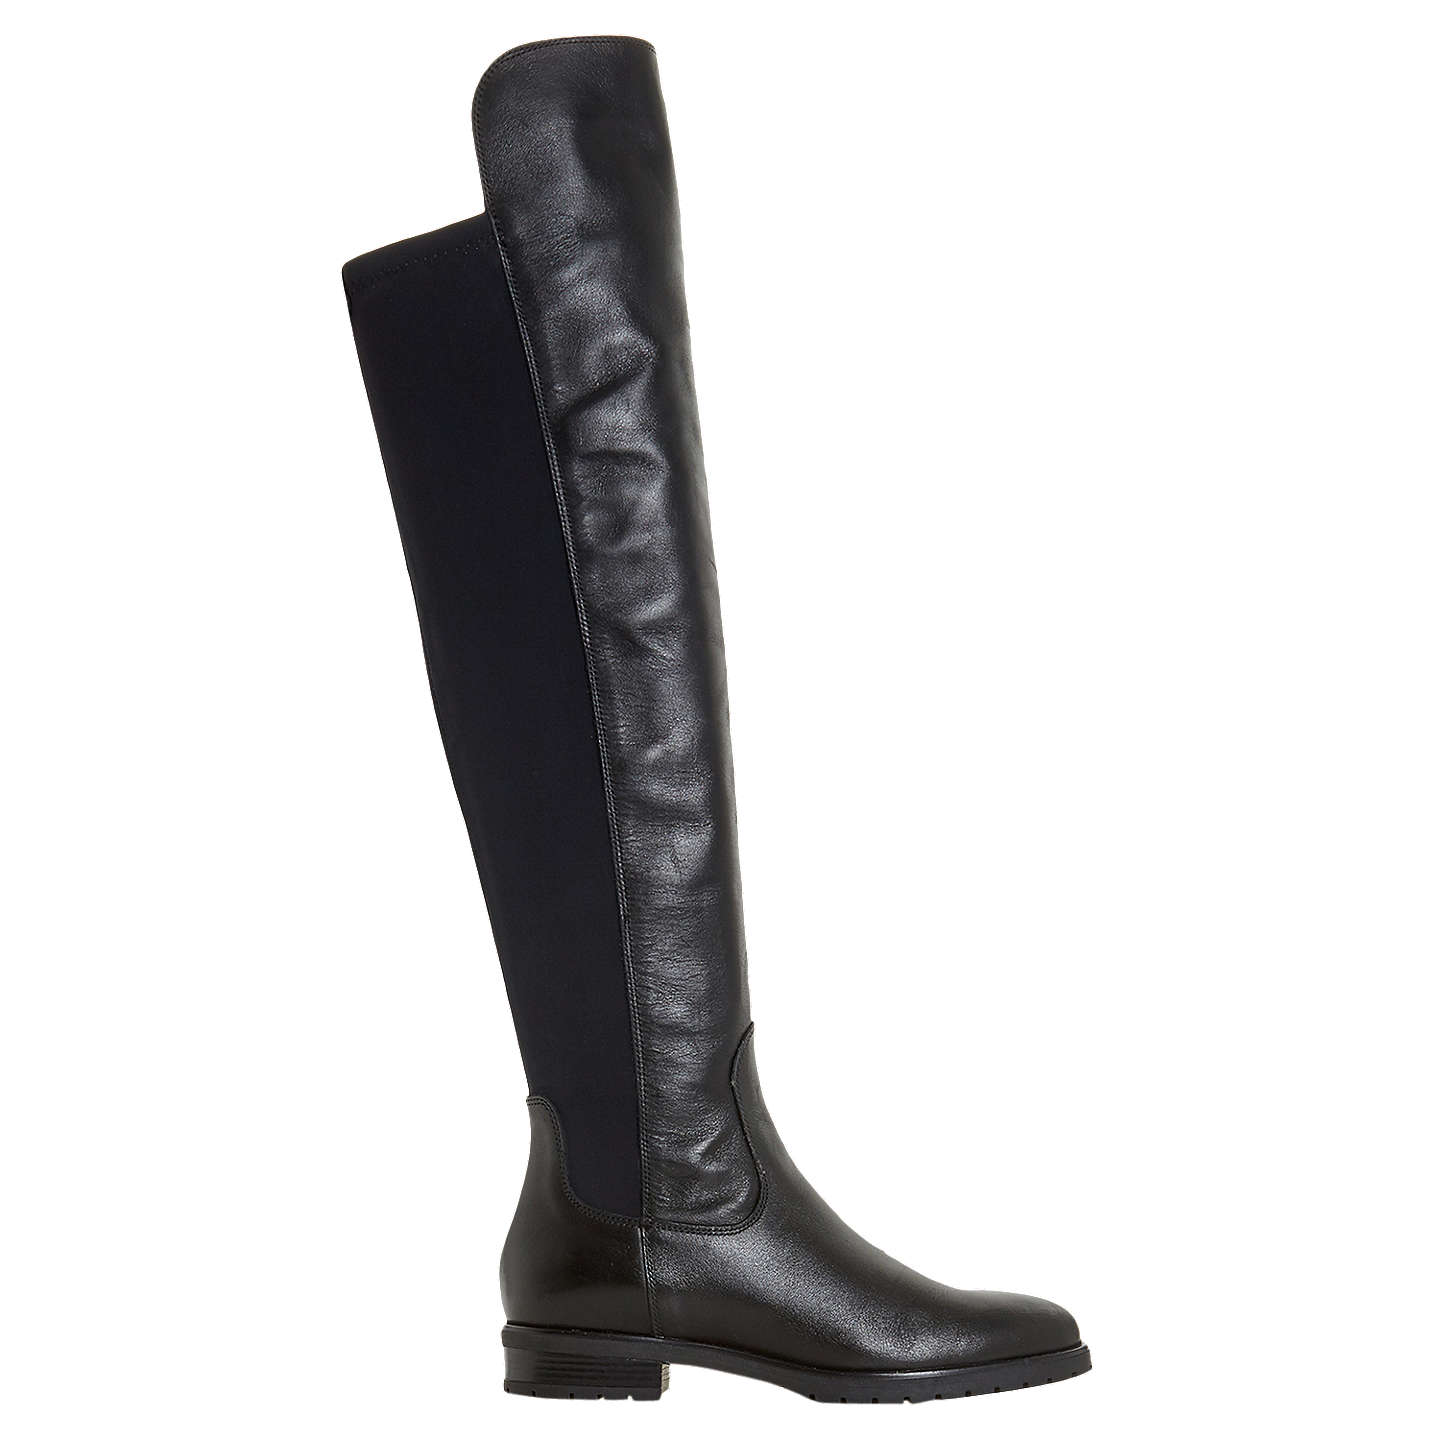 BuyDune Tarrin Over the Knee Boots, Black Leather, 3 Online at johnlewis.com